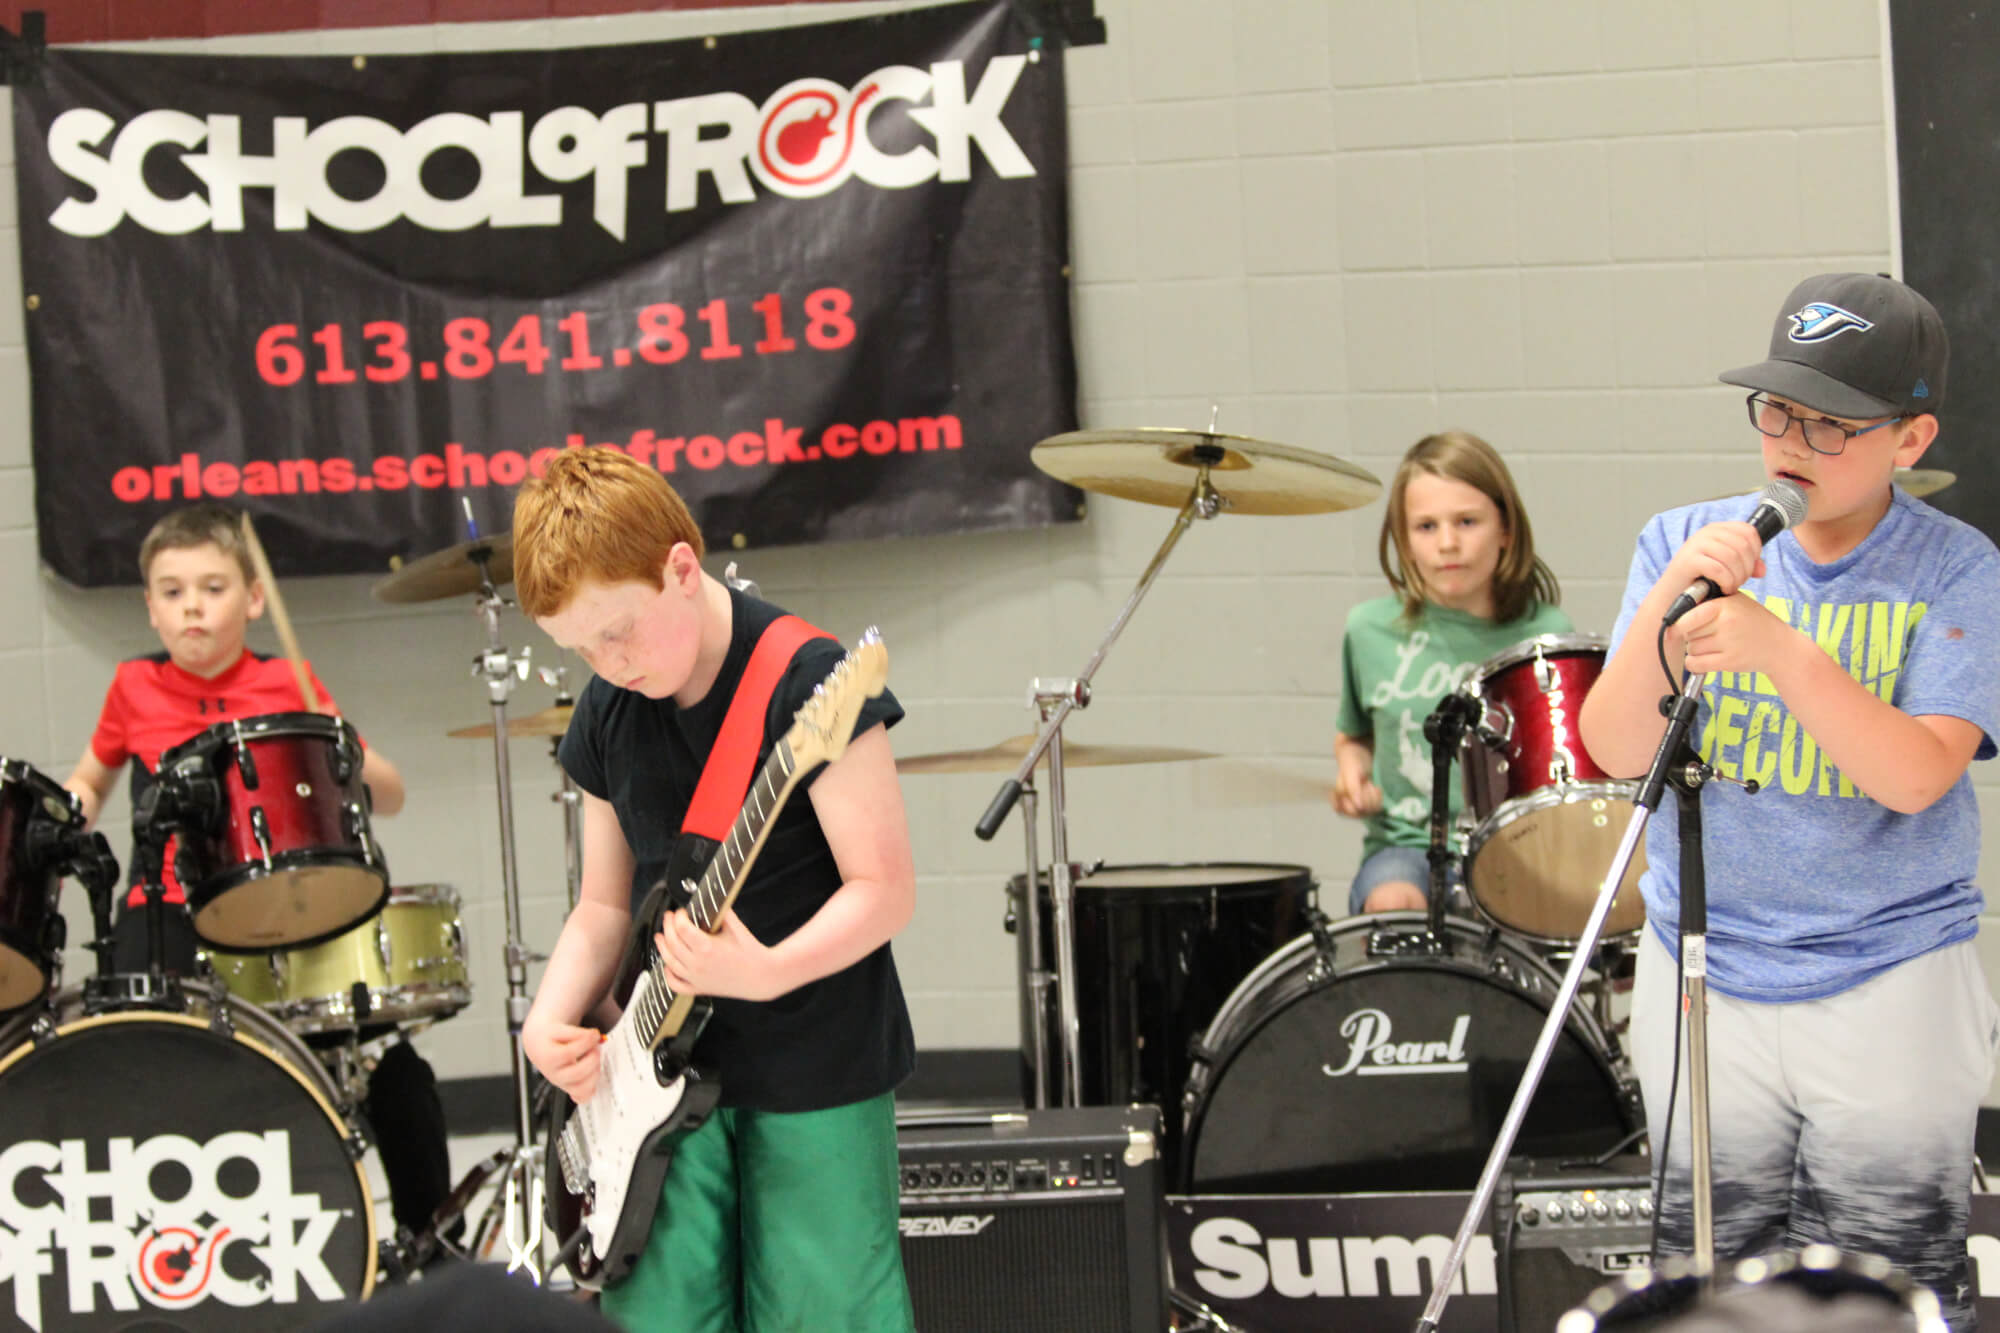 Rock 101 students in action.